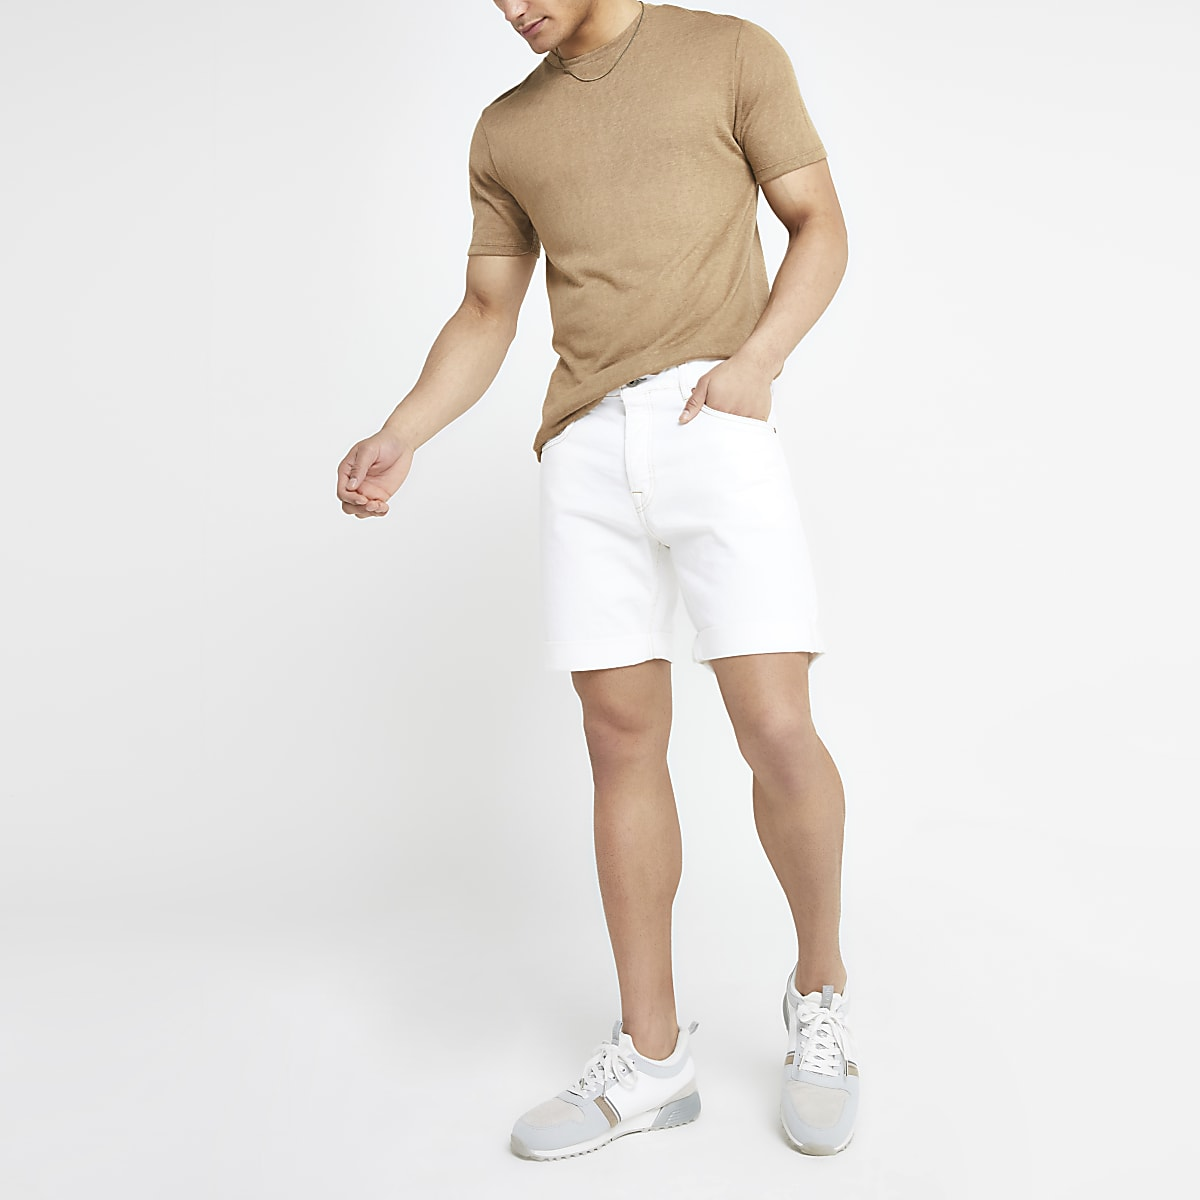 Pepe Jeans white Belife denim shorts